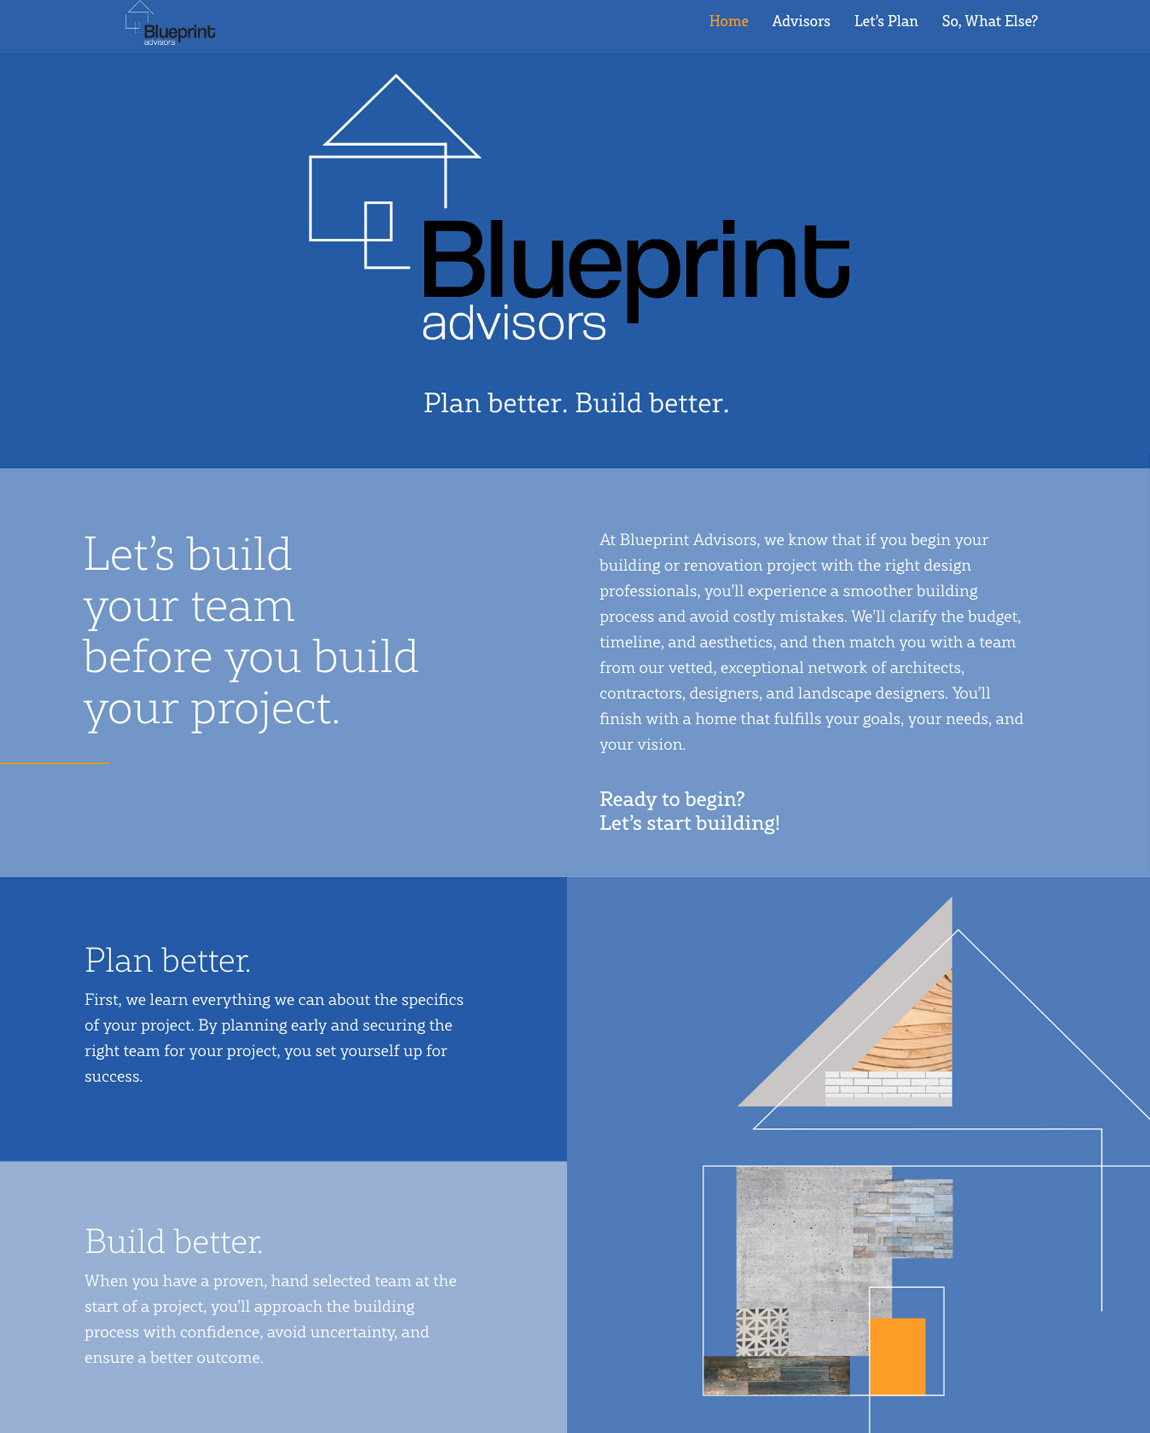 blueprint advisors website image